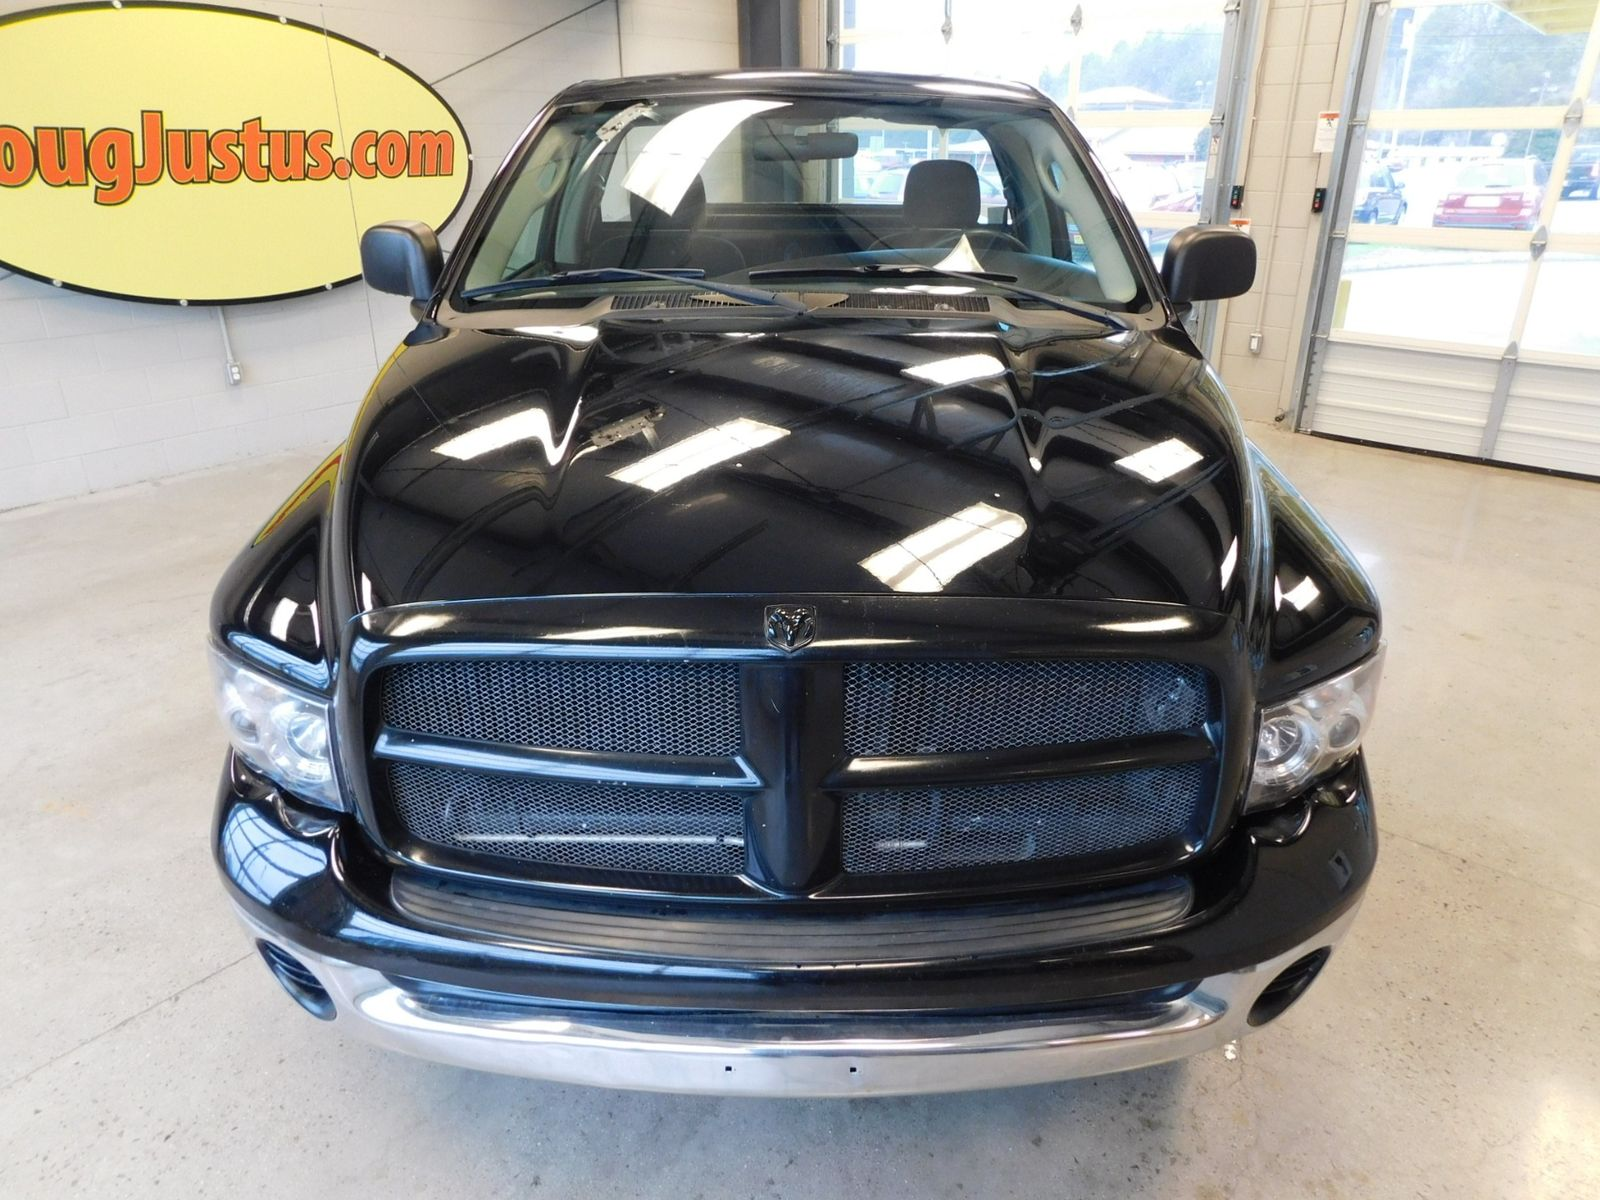 Herb chambers dodge new car release information for Airport motor mile used cars